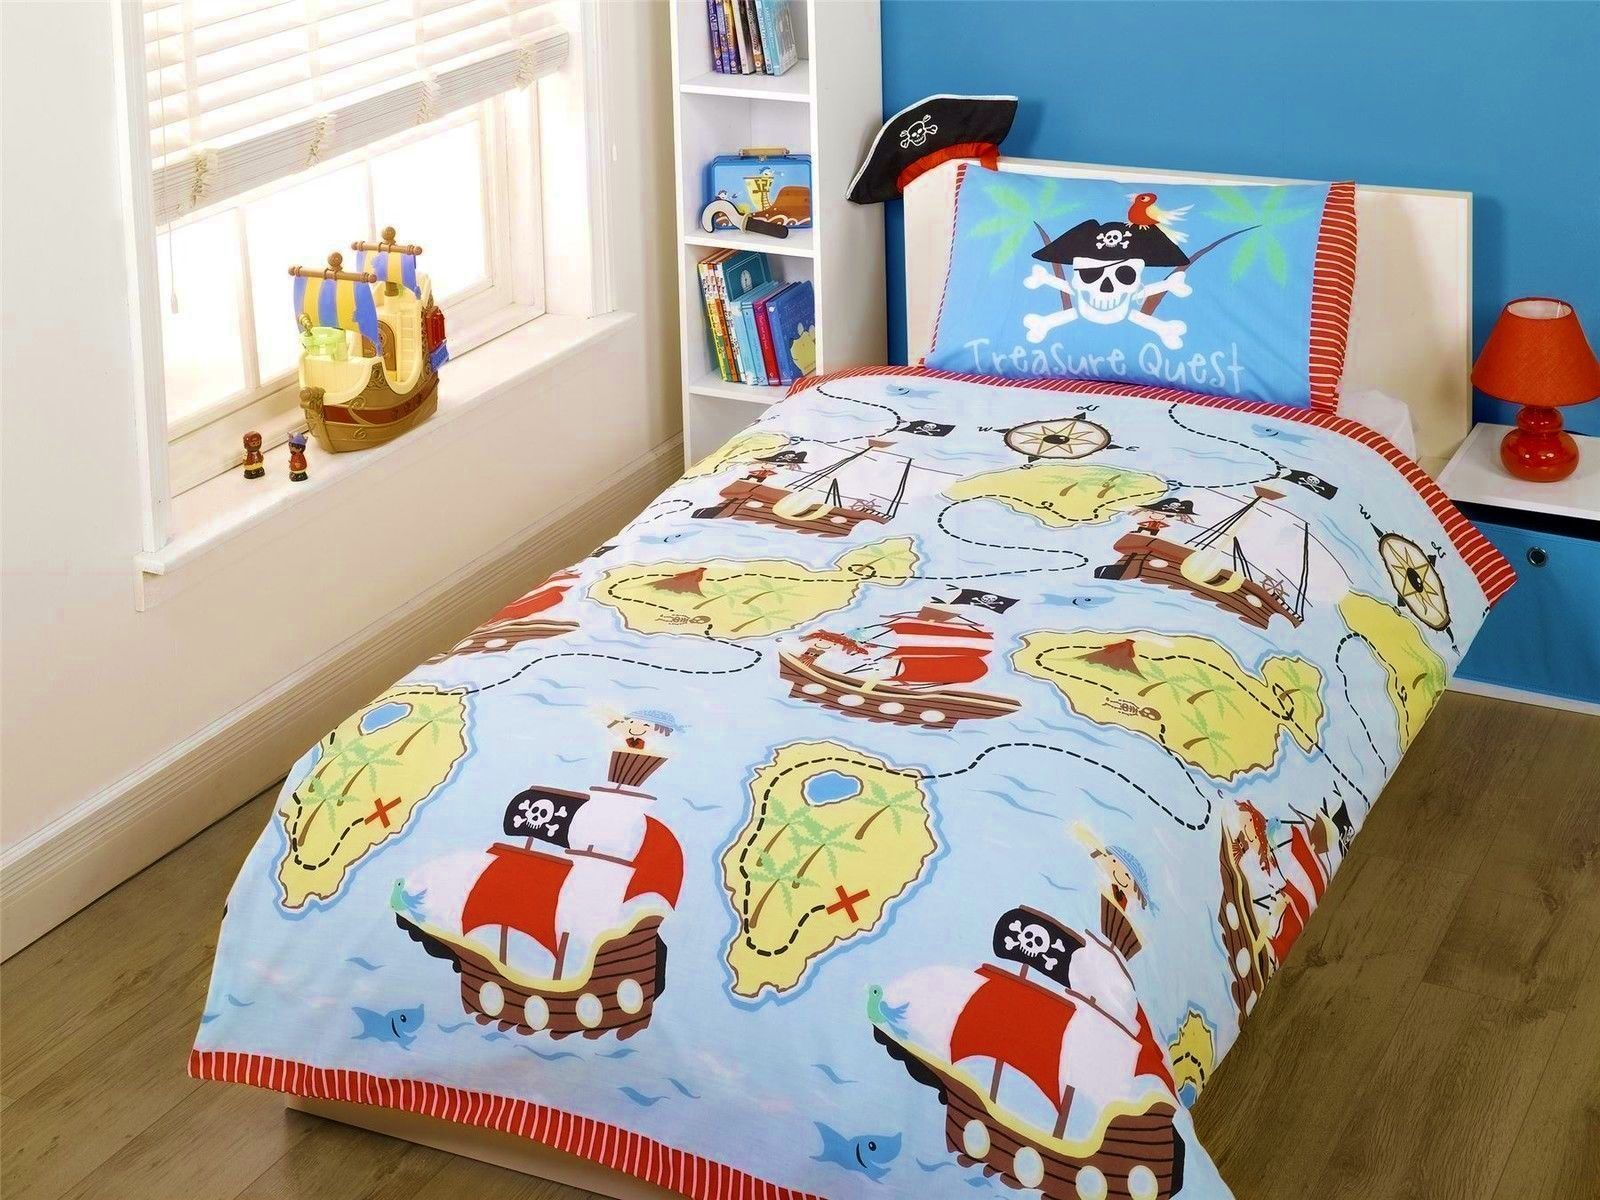 Wonderful Treasure Quest Pirate Bedding Full Duvet Cover / Comforter Cover Set    Pirate Ship Skull Cross